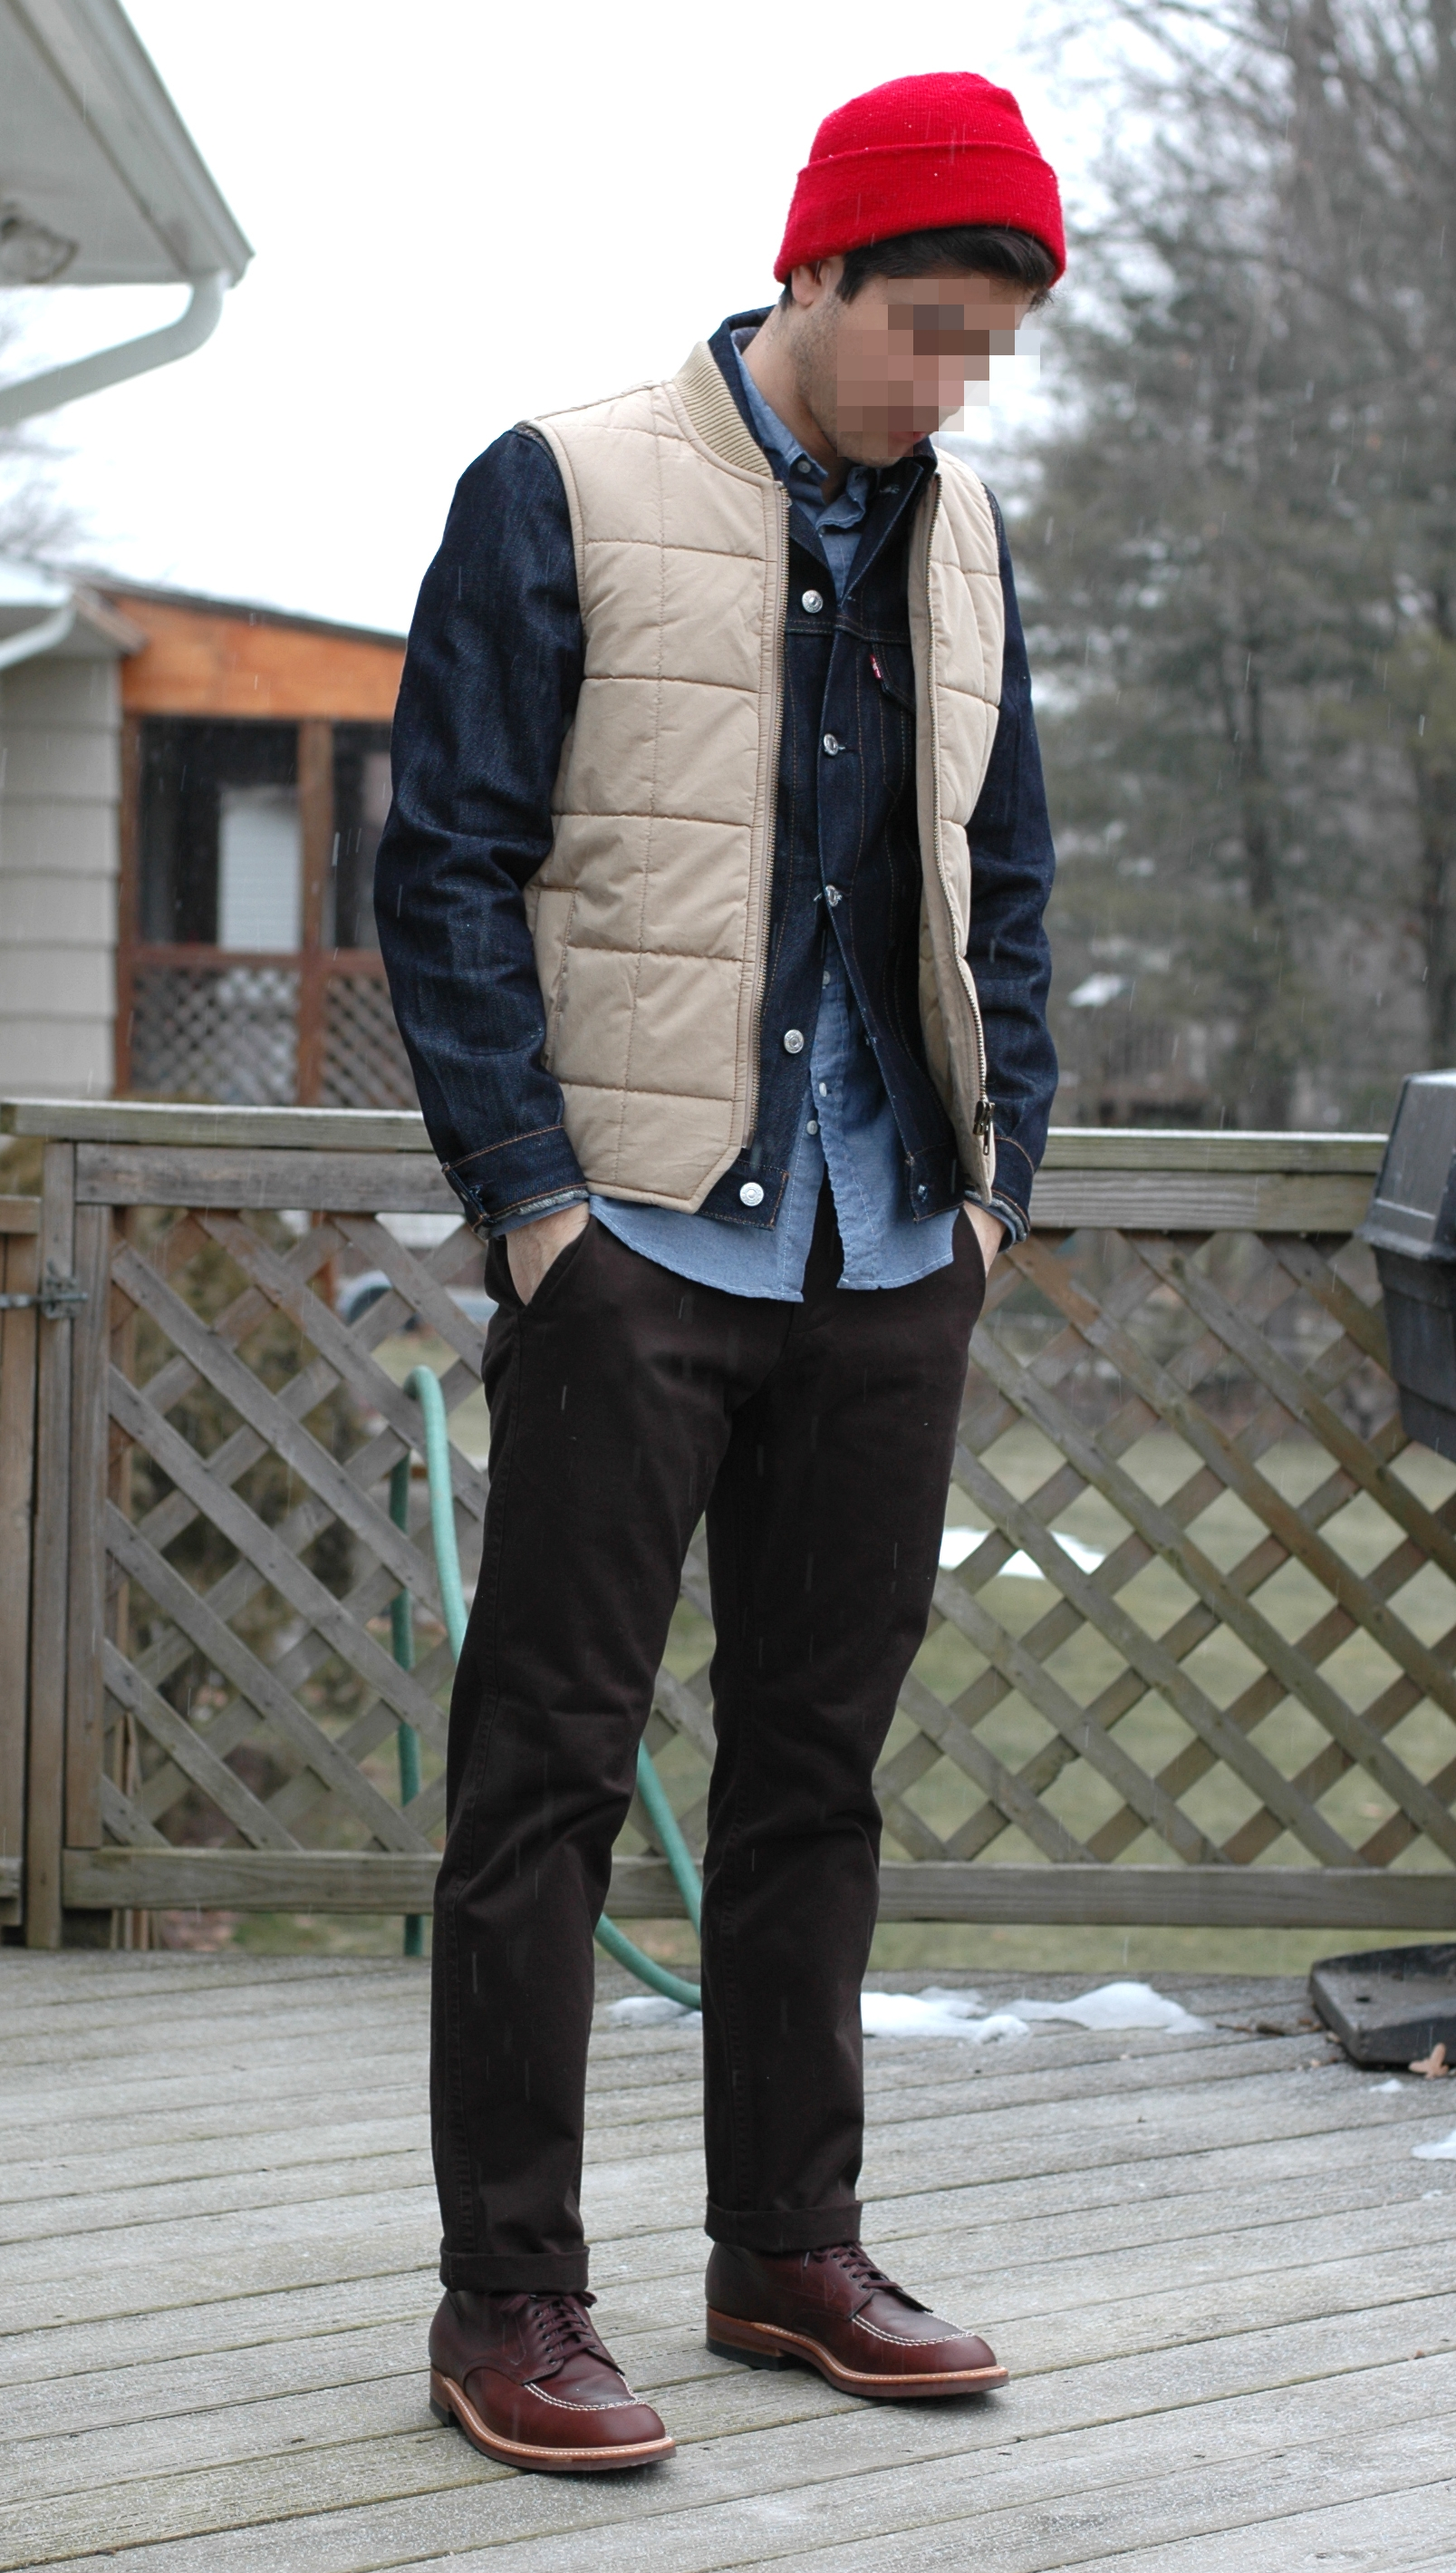 Inspiration Album Denim Jacket As A Layering Piece Malefashionadvice